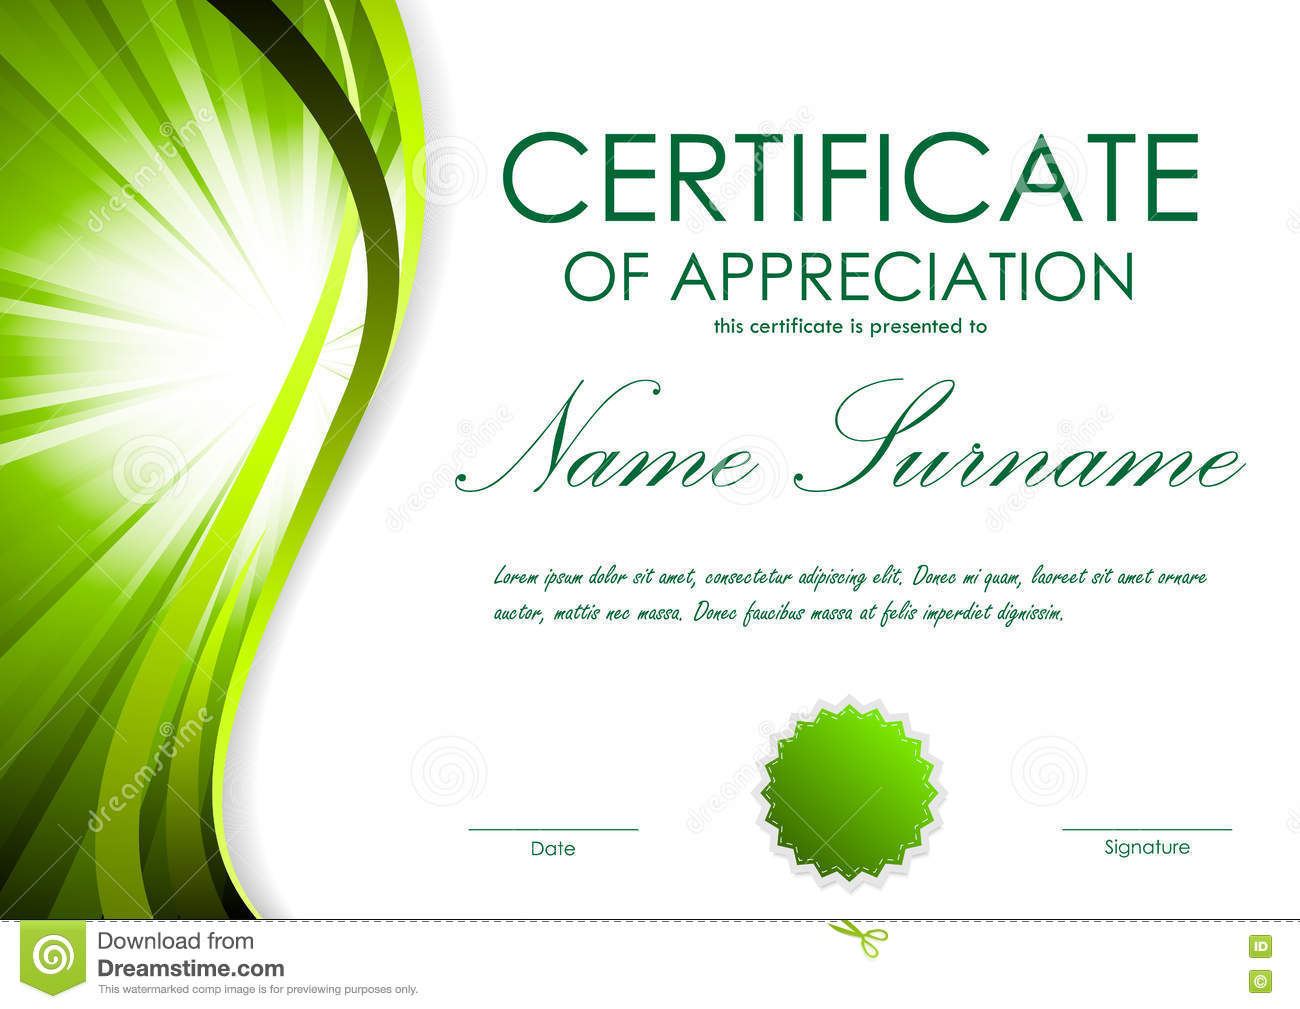 Download certificate of appreciation template flyingheart download certificate of appreciation template yelopaper Images